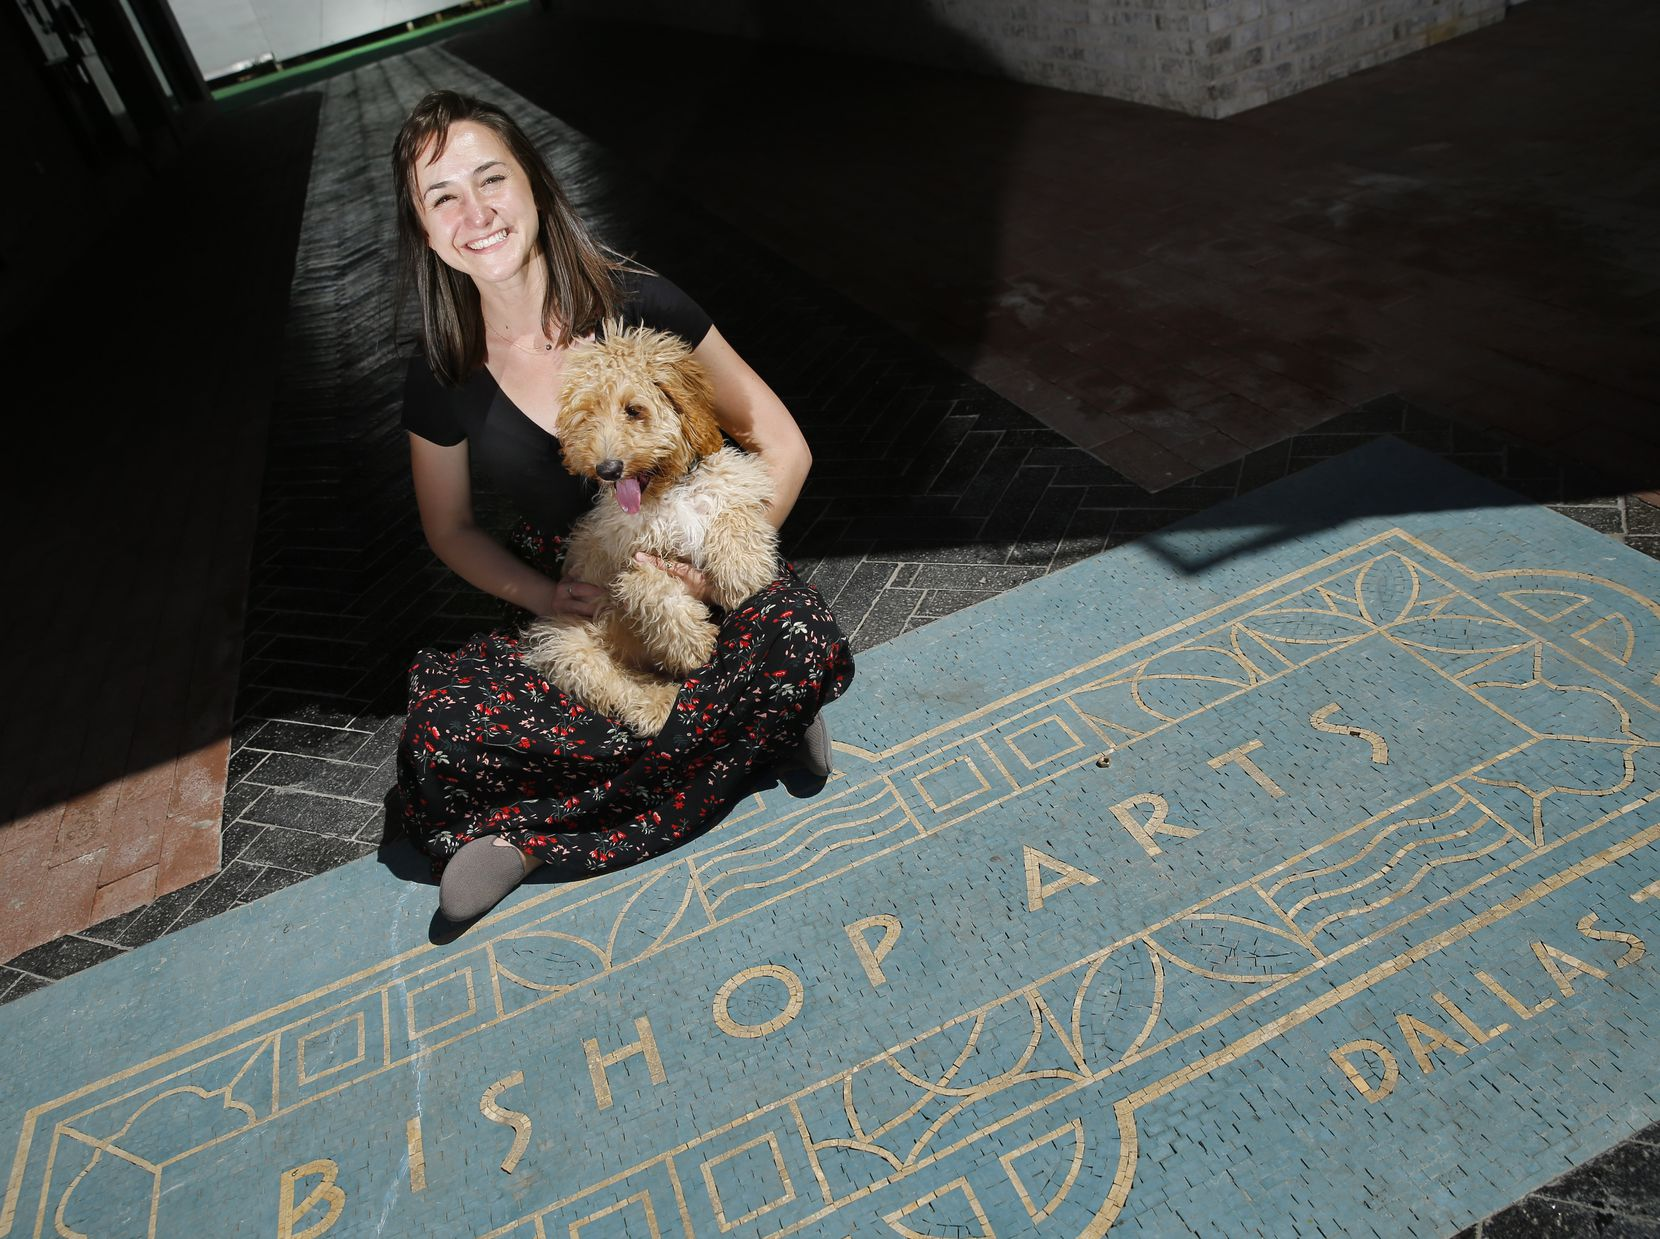 Lauren Stroh lives in a Bishop Arts apartment with her boyfriend, Ryan, whom she says is a big part of her support network, and her dog Murphy.